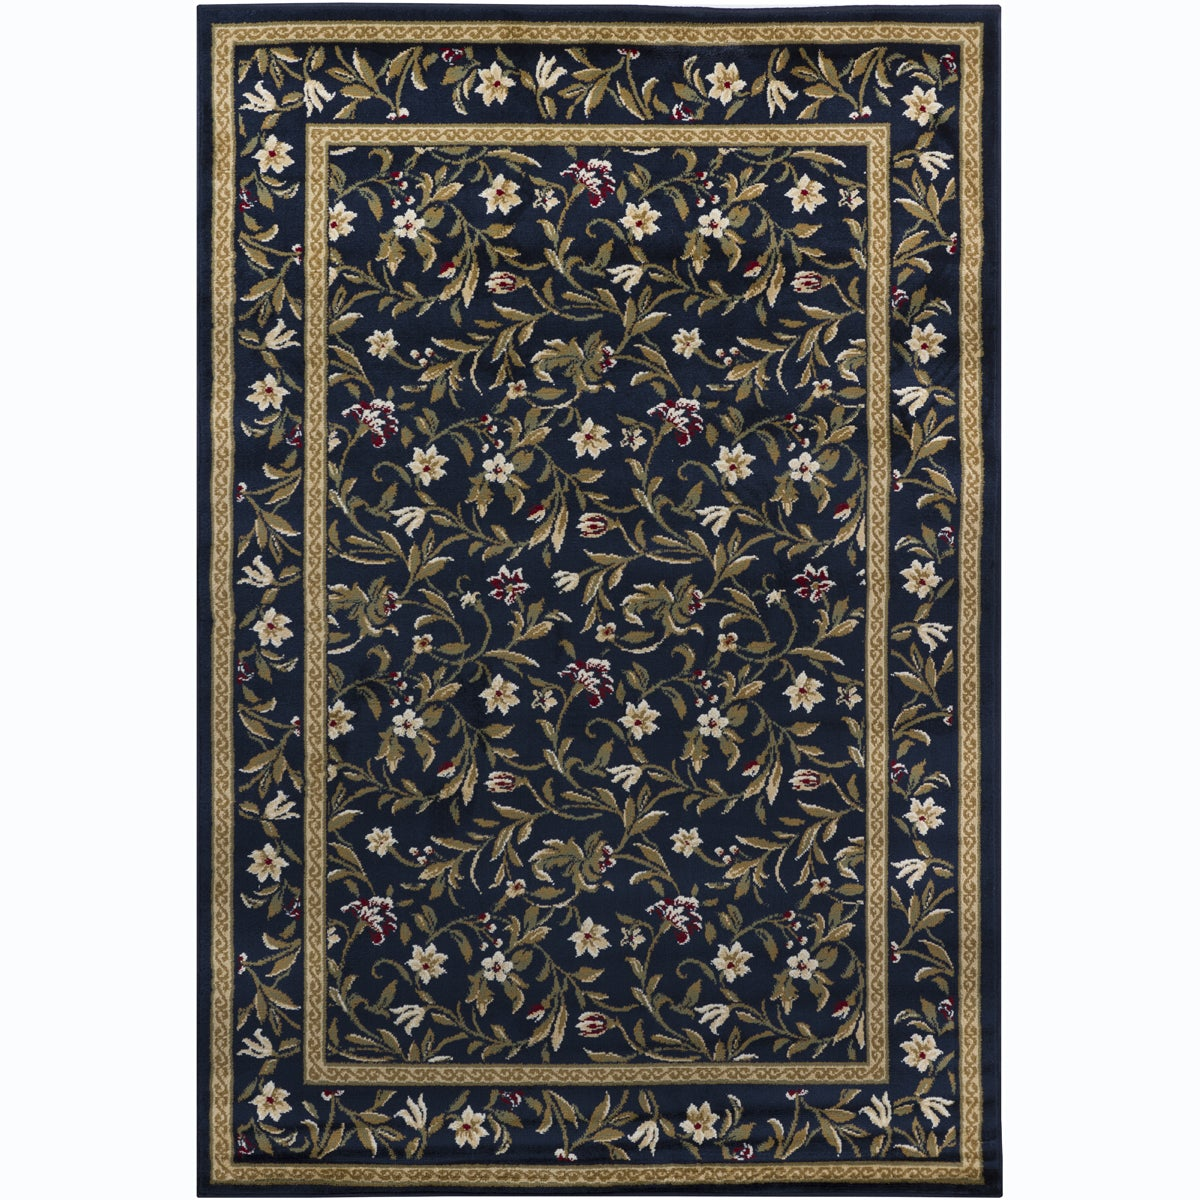 Artist's Loom Indoor Transitional Floral Rug (8' x 11'2) - Thumbnail 0